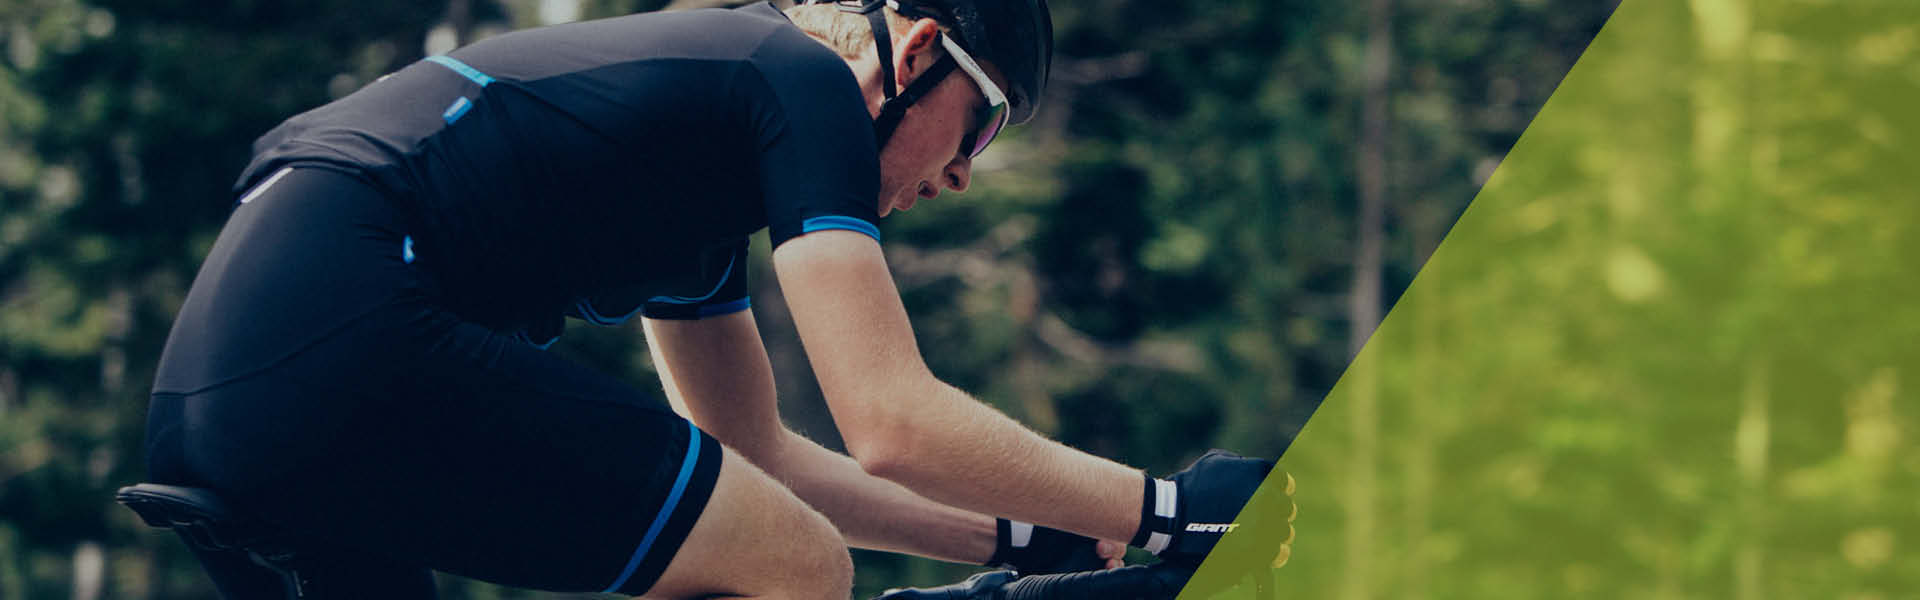 What Is Chamois And Why Does It Matter?